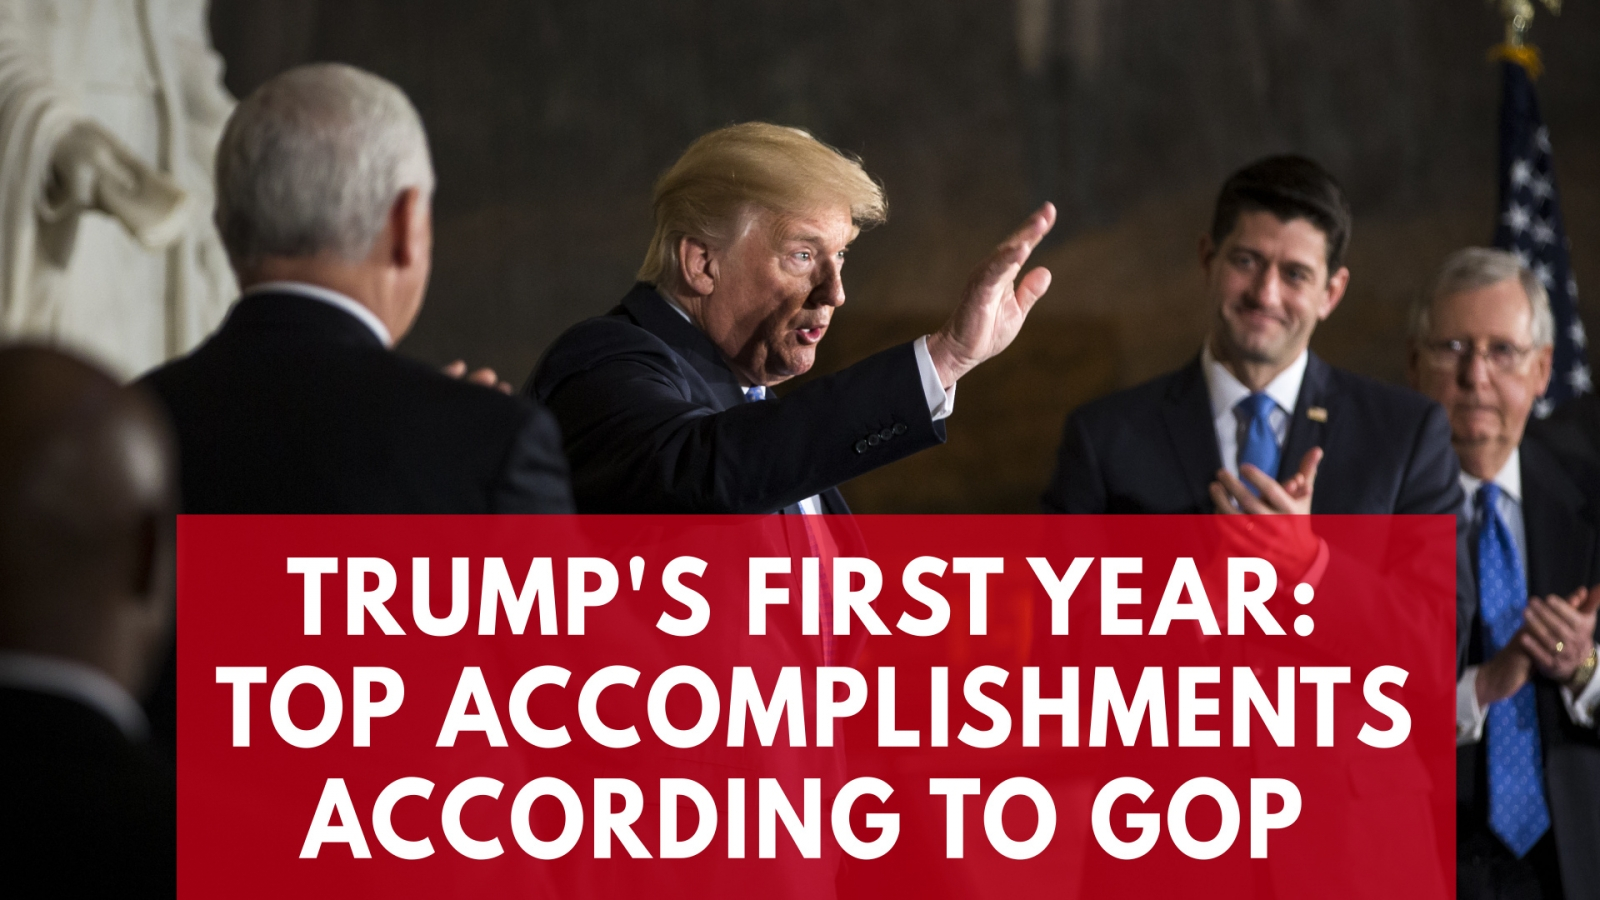 president-trumps-top-accomplishments-in-his-first-year-in-office-according-to-the-gop